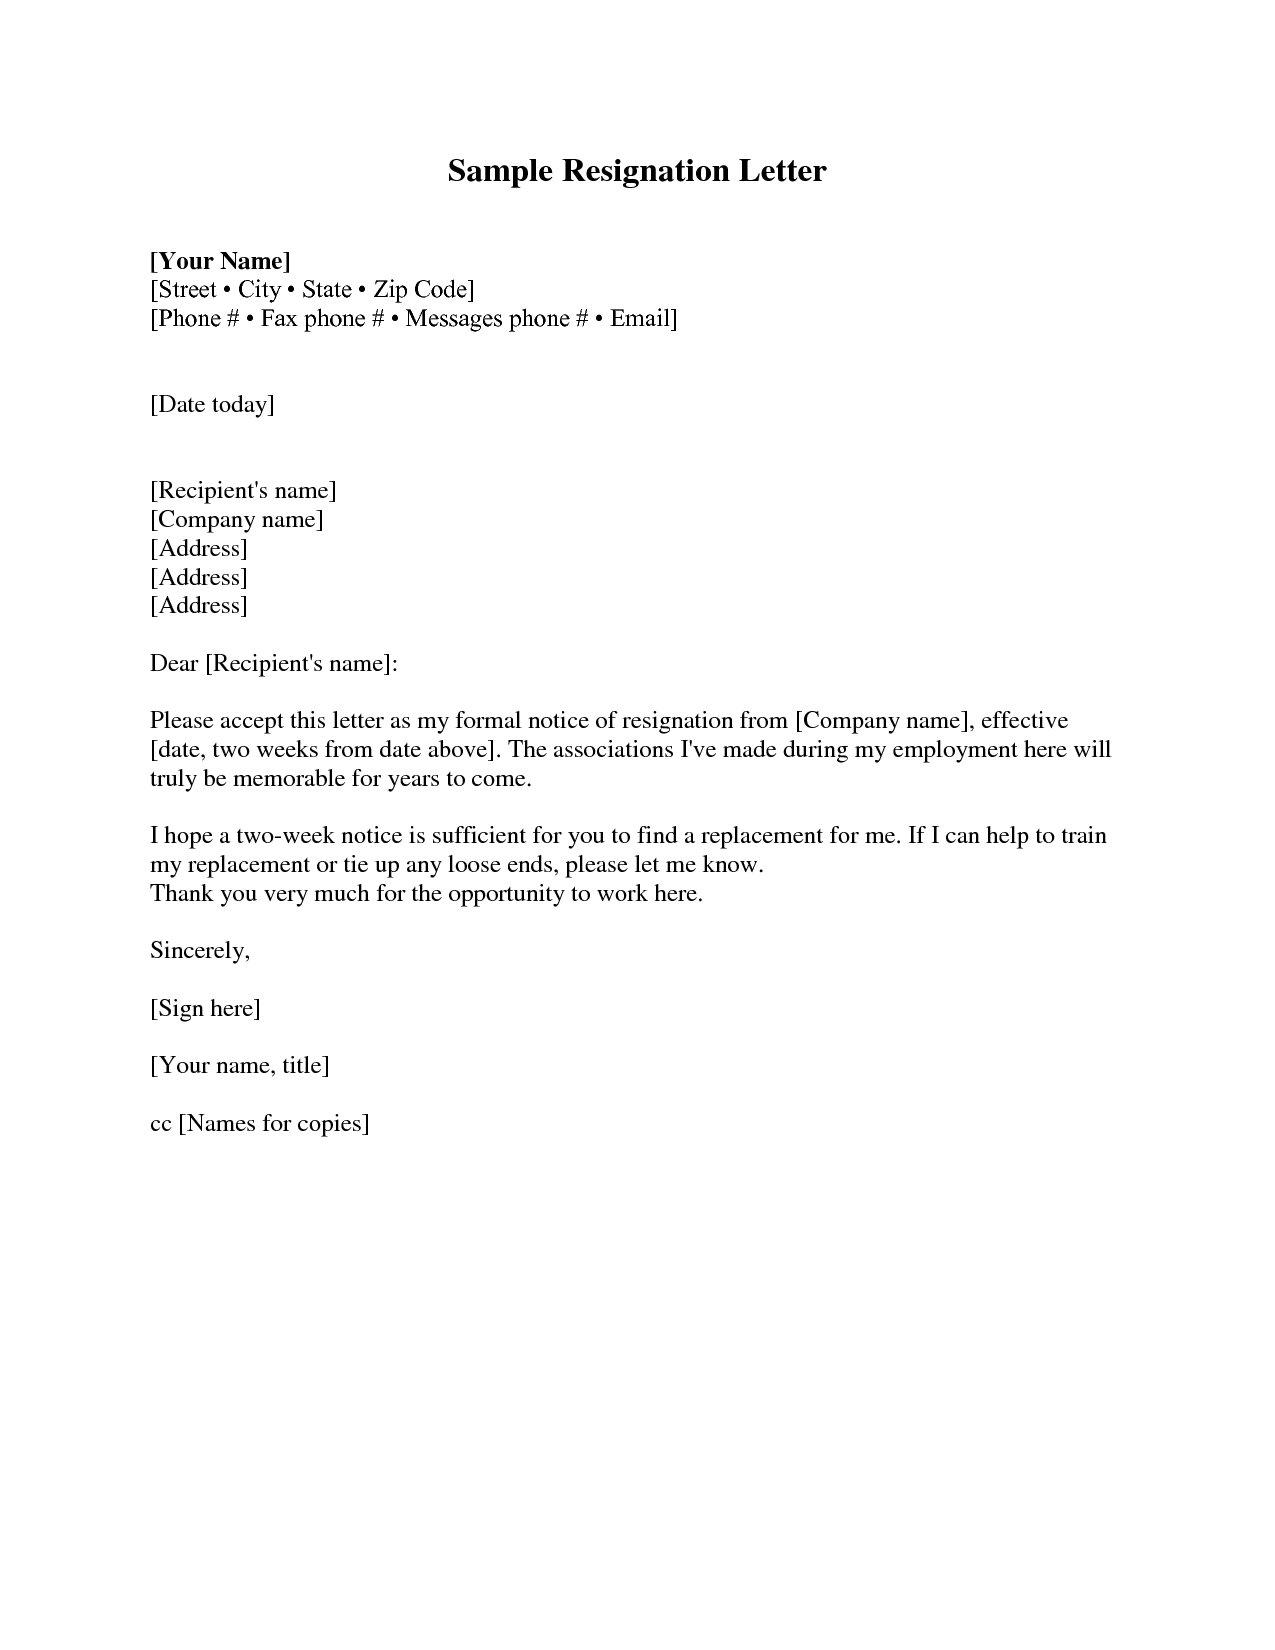 Resignation letter 2 weeks notice resignation letter https resignation letter 2 weeks notice resignation letter https3sixtycyclingstudioresignation expocarfo